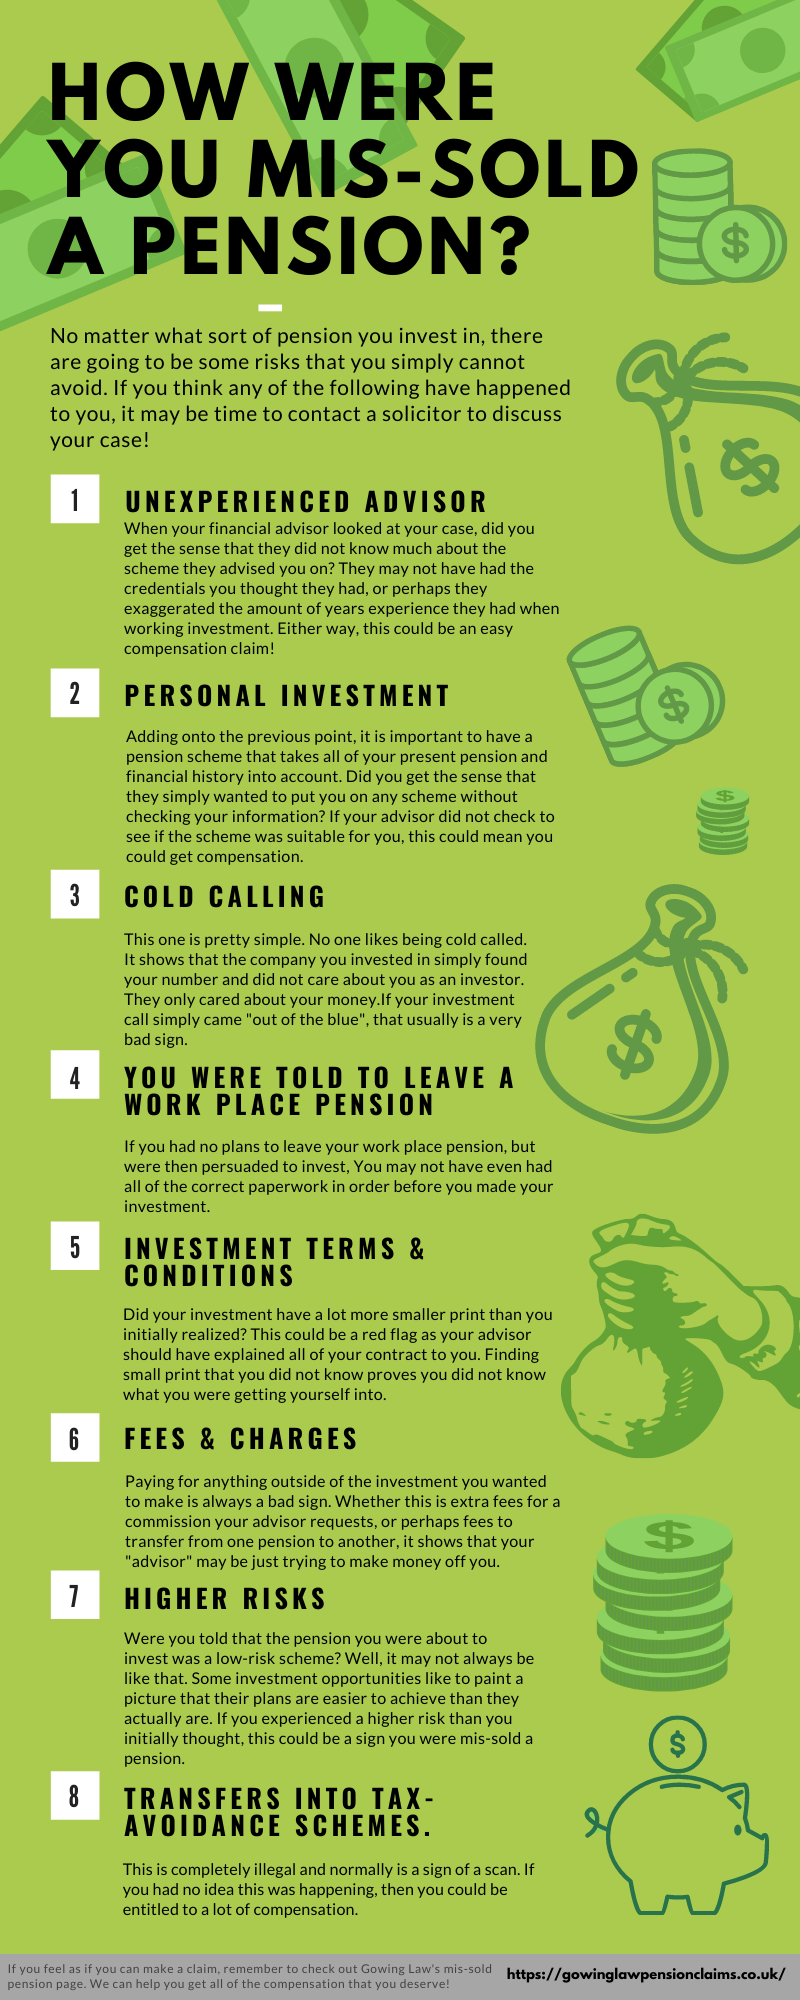 Being mis-sold a pension infographic